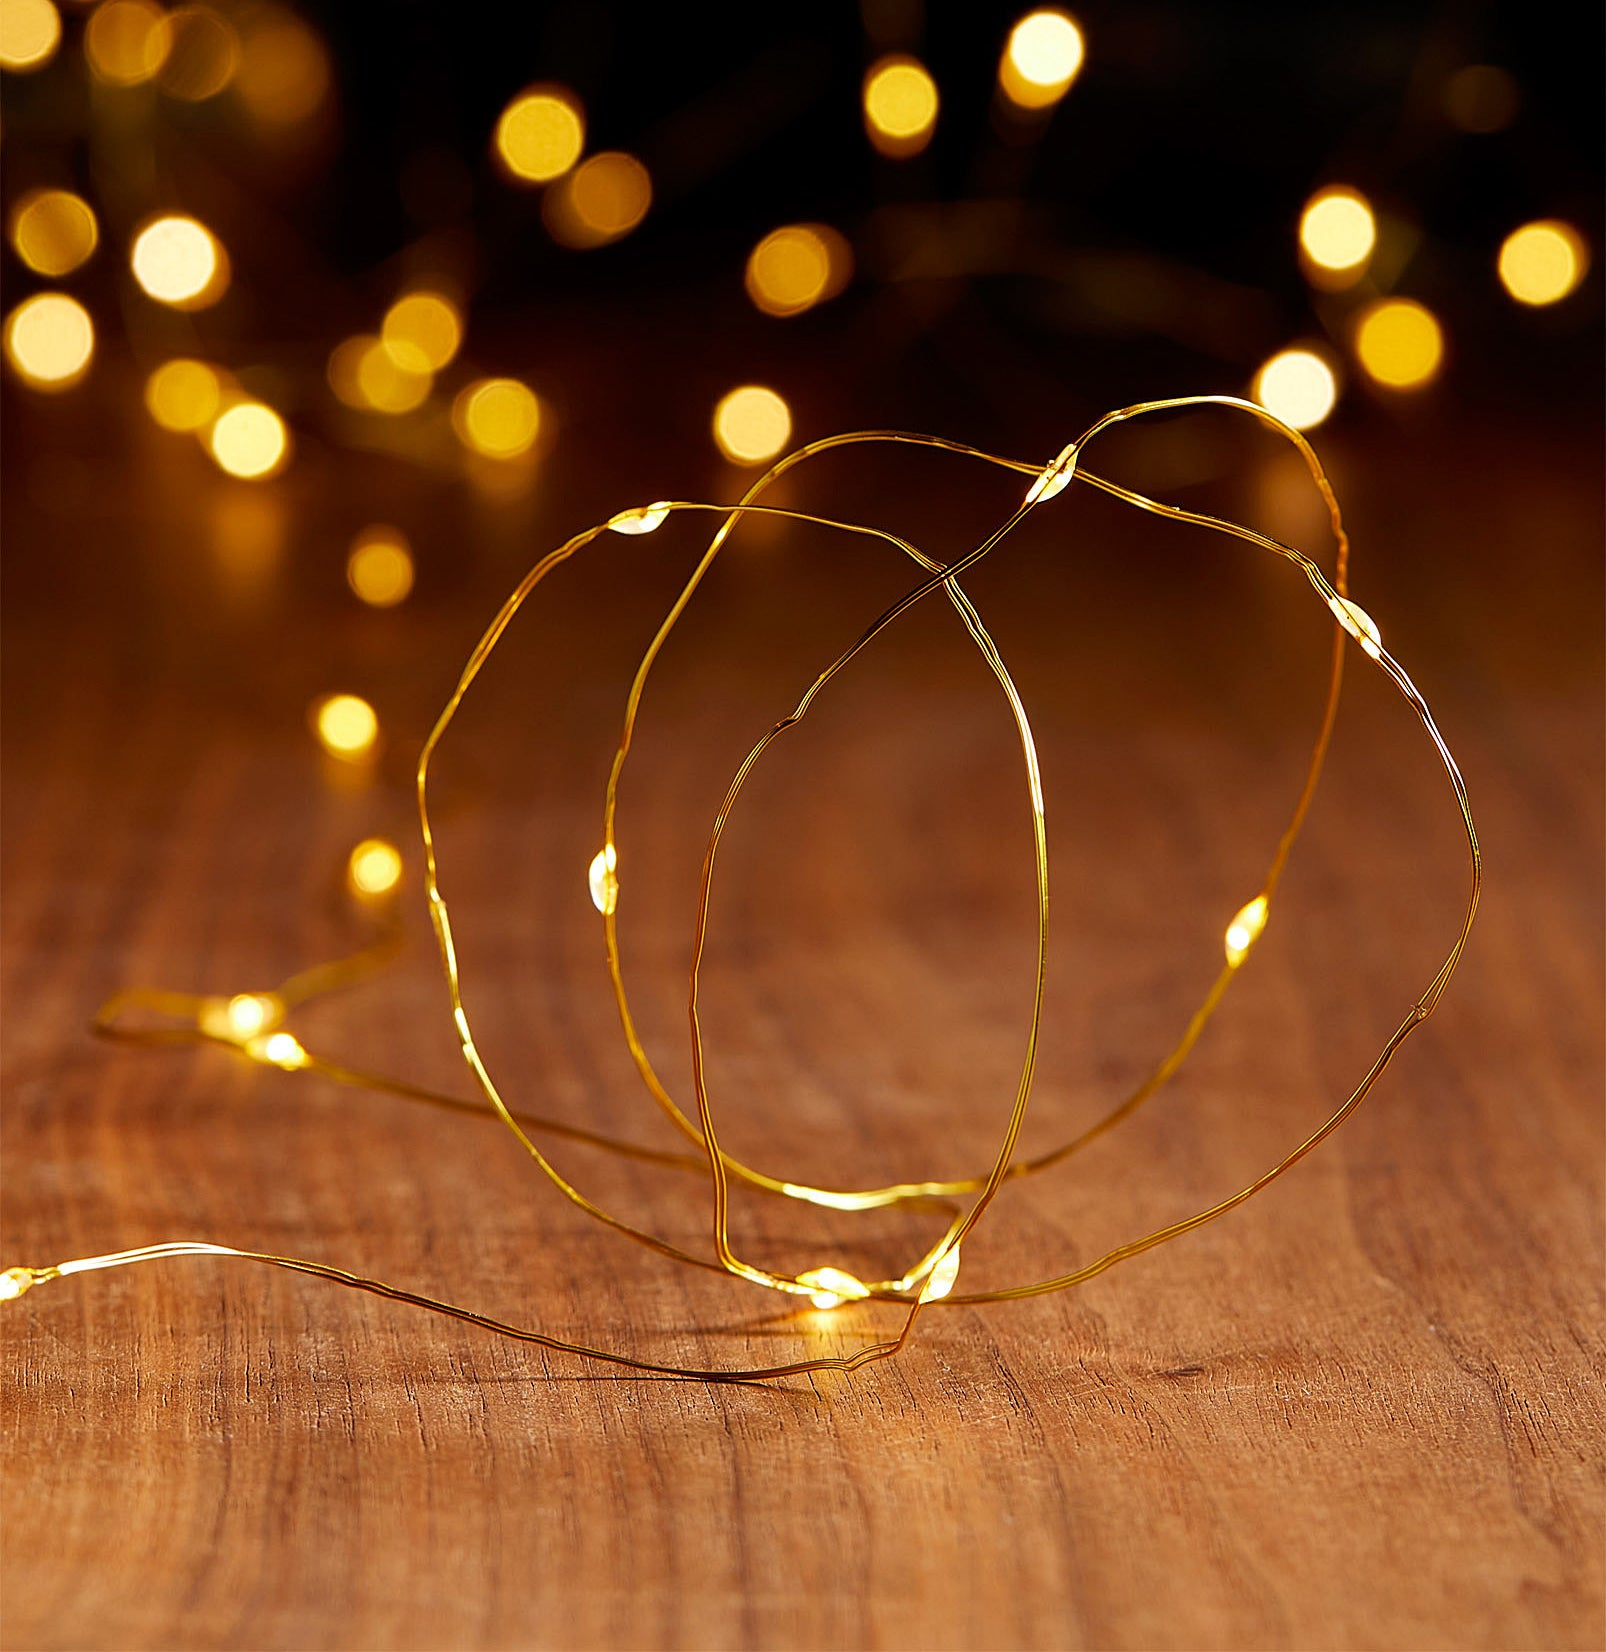 A long cord of fairy string lights on a wooden floor